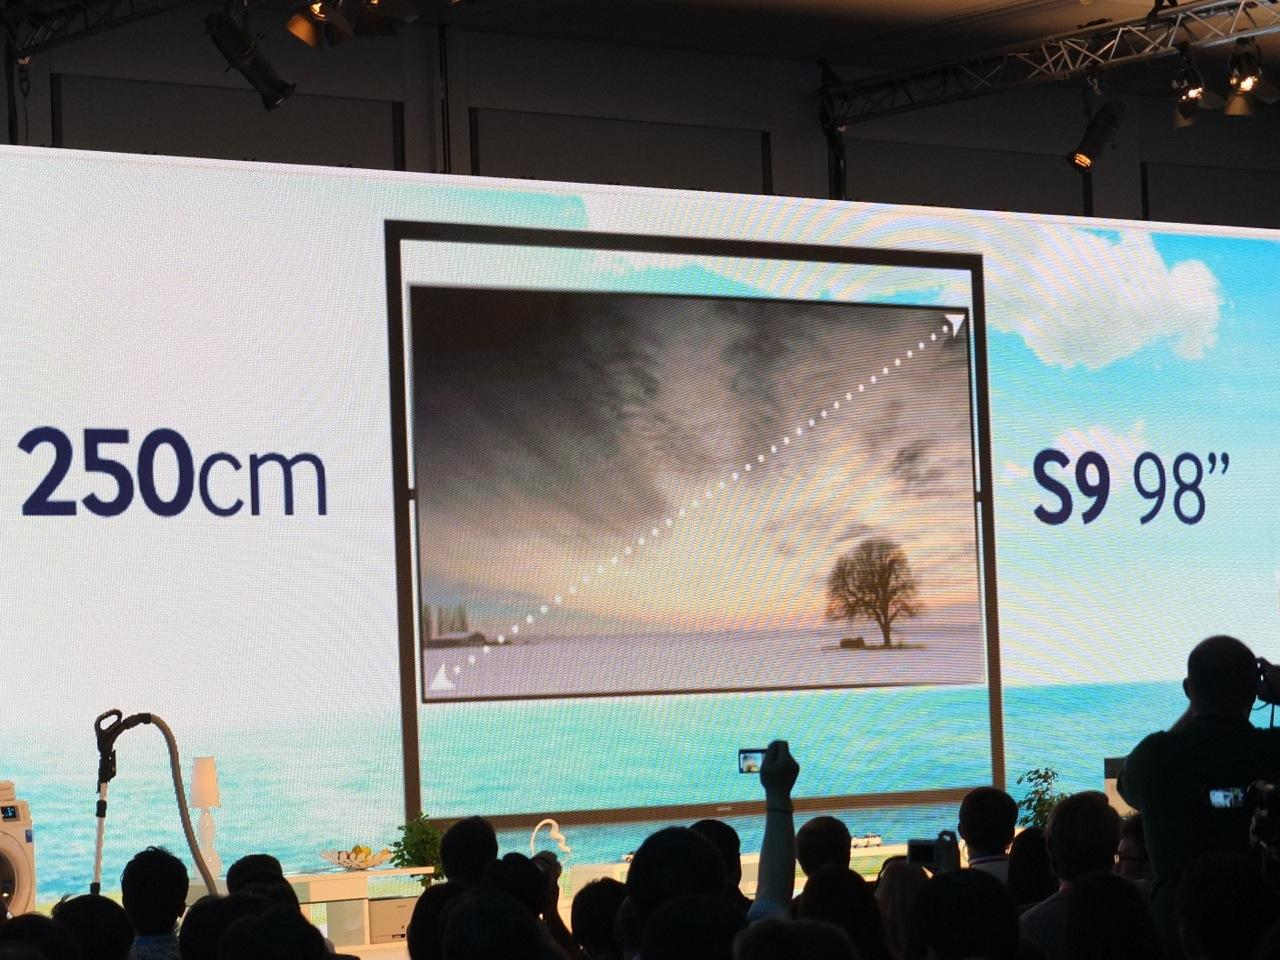 Samsung unveils the 98-inch UHD S9 television at IFA 2013